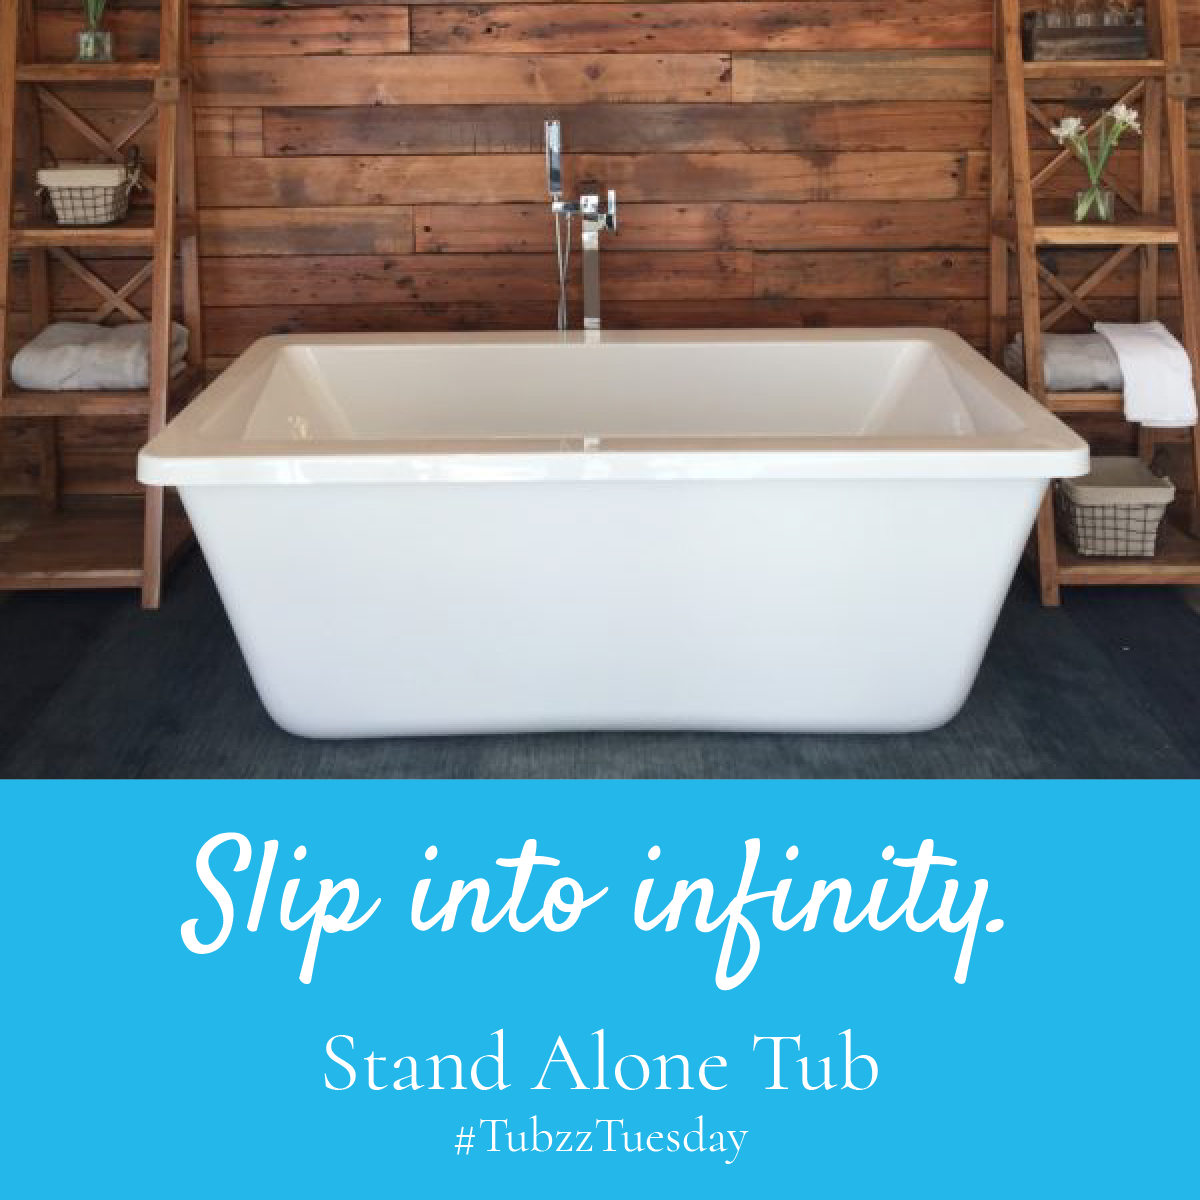 Check out \'Infinity\' our new stand alone tub. #TubzzTuesday ...